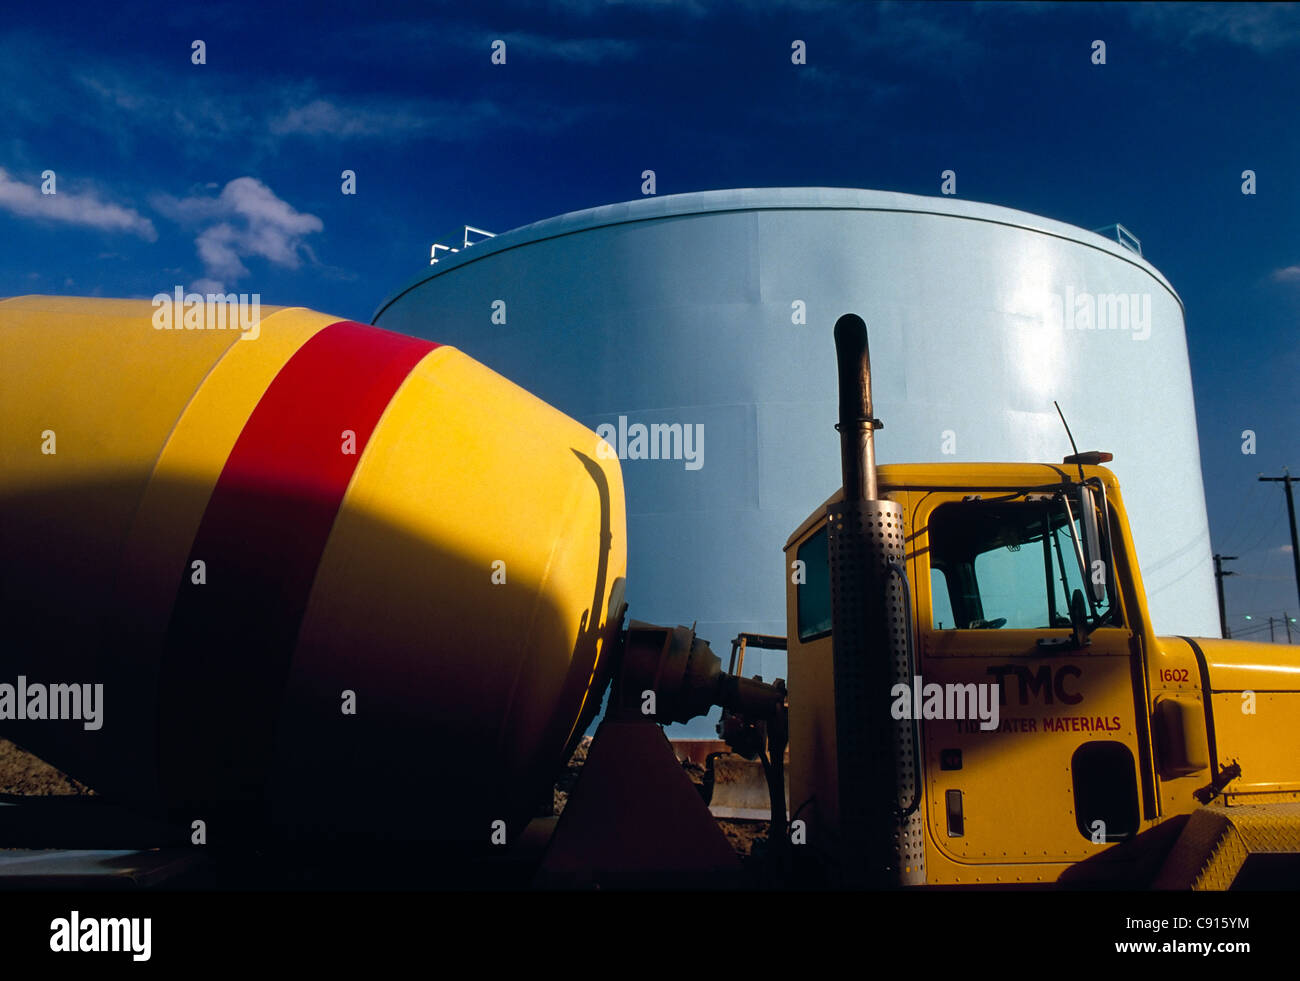 Yellow cement truck on the construction site of a water treatment plant, Hopewell, Virginia, USA - Stock Image